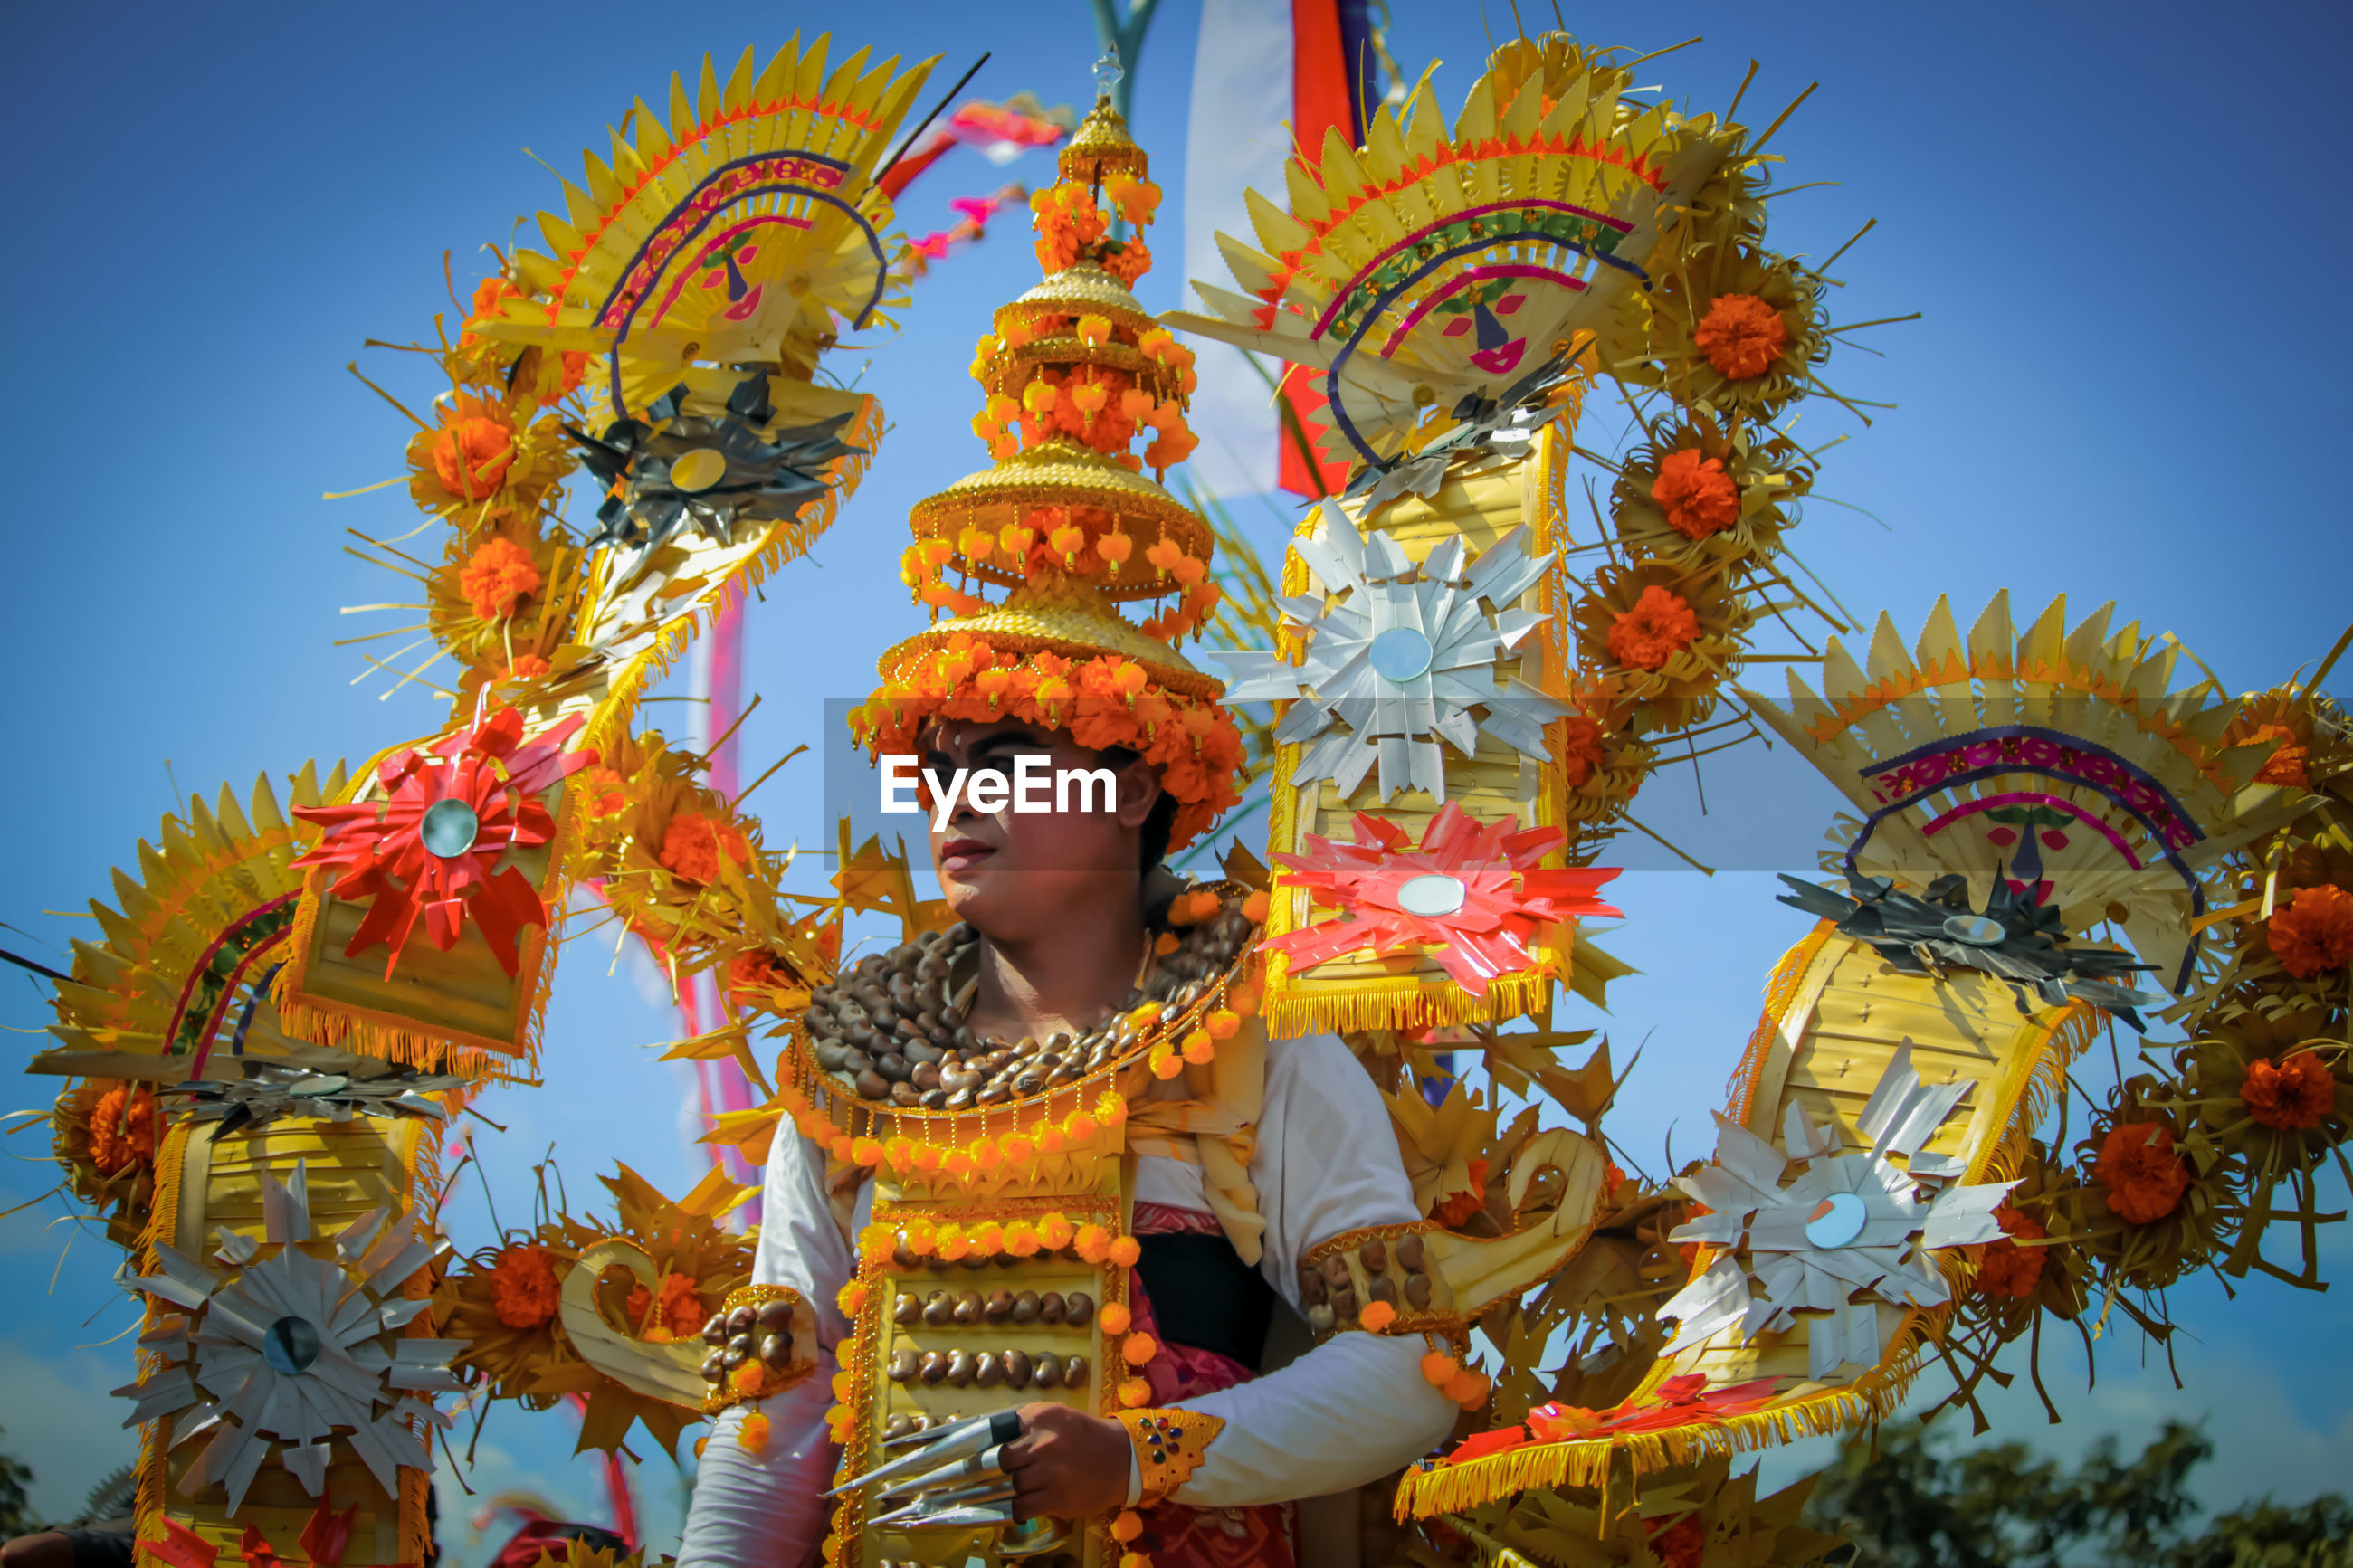 Low angle view of man wearing costume against sky